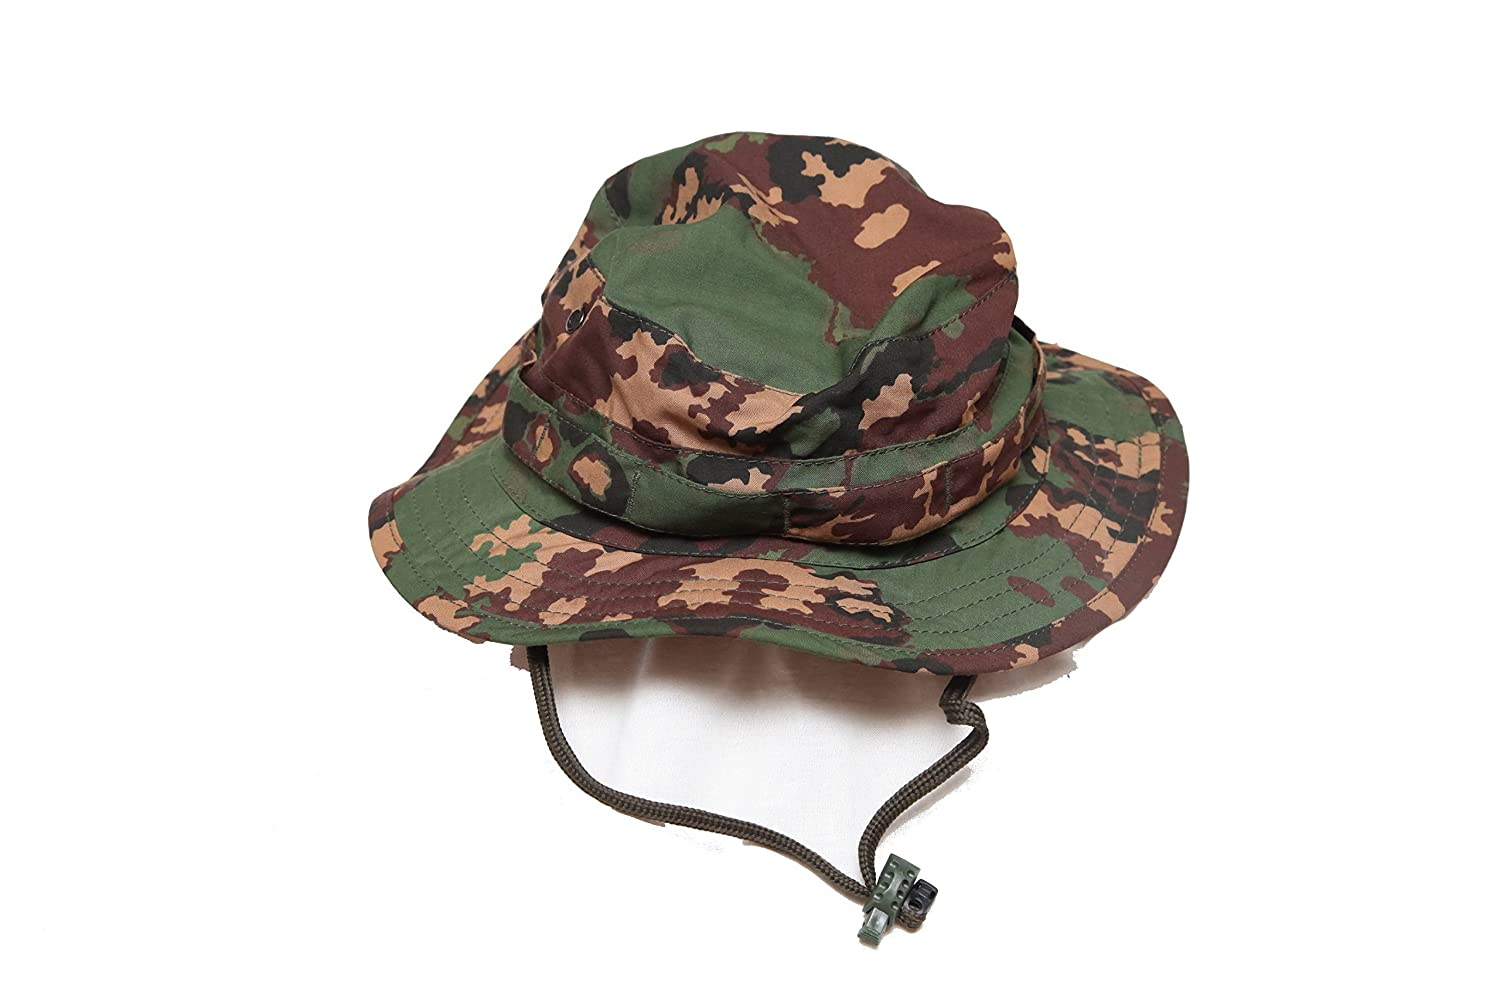 Russian army military spetsnaz sposn sso boonie hat summer at amazon mens  clothing store jpg 1500x1000 0a0a62507409